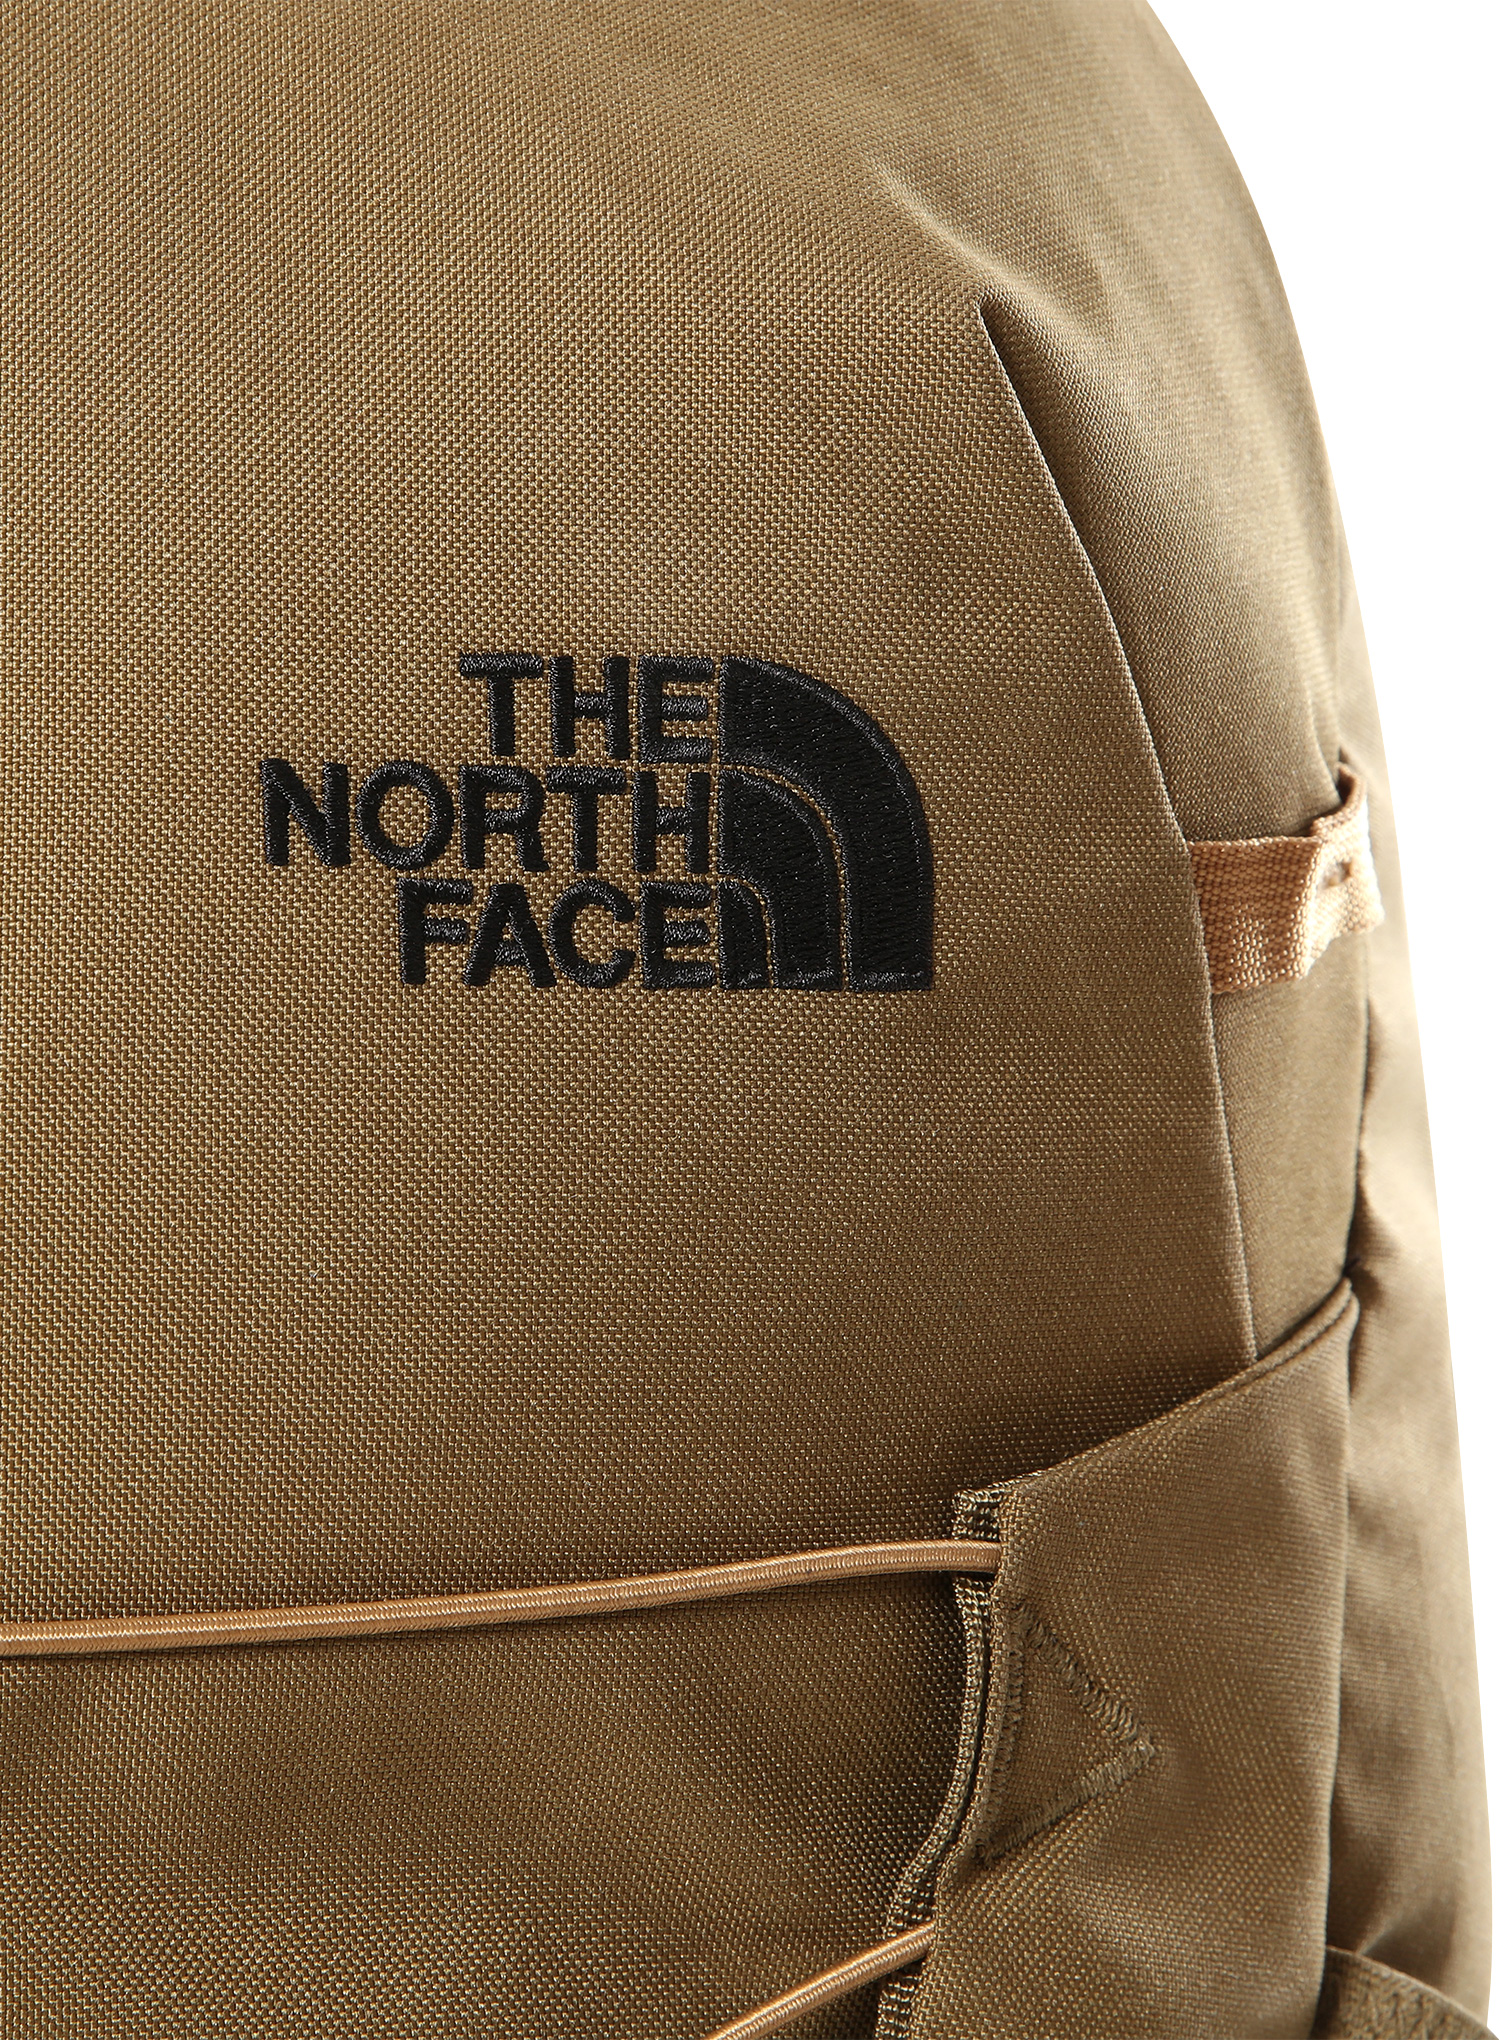 Plecak The North Face Cryptic - military olive/brown - zdjęcie nr. 3